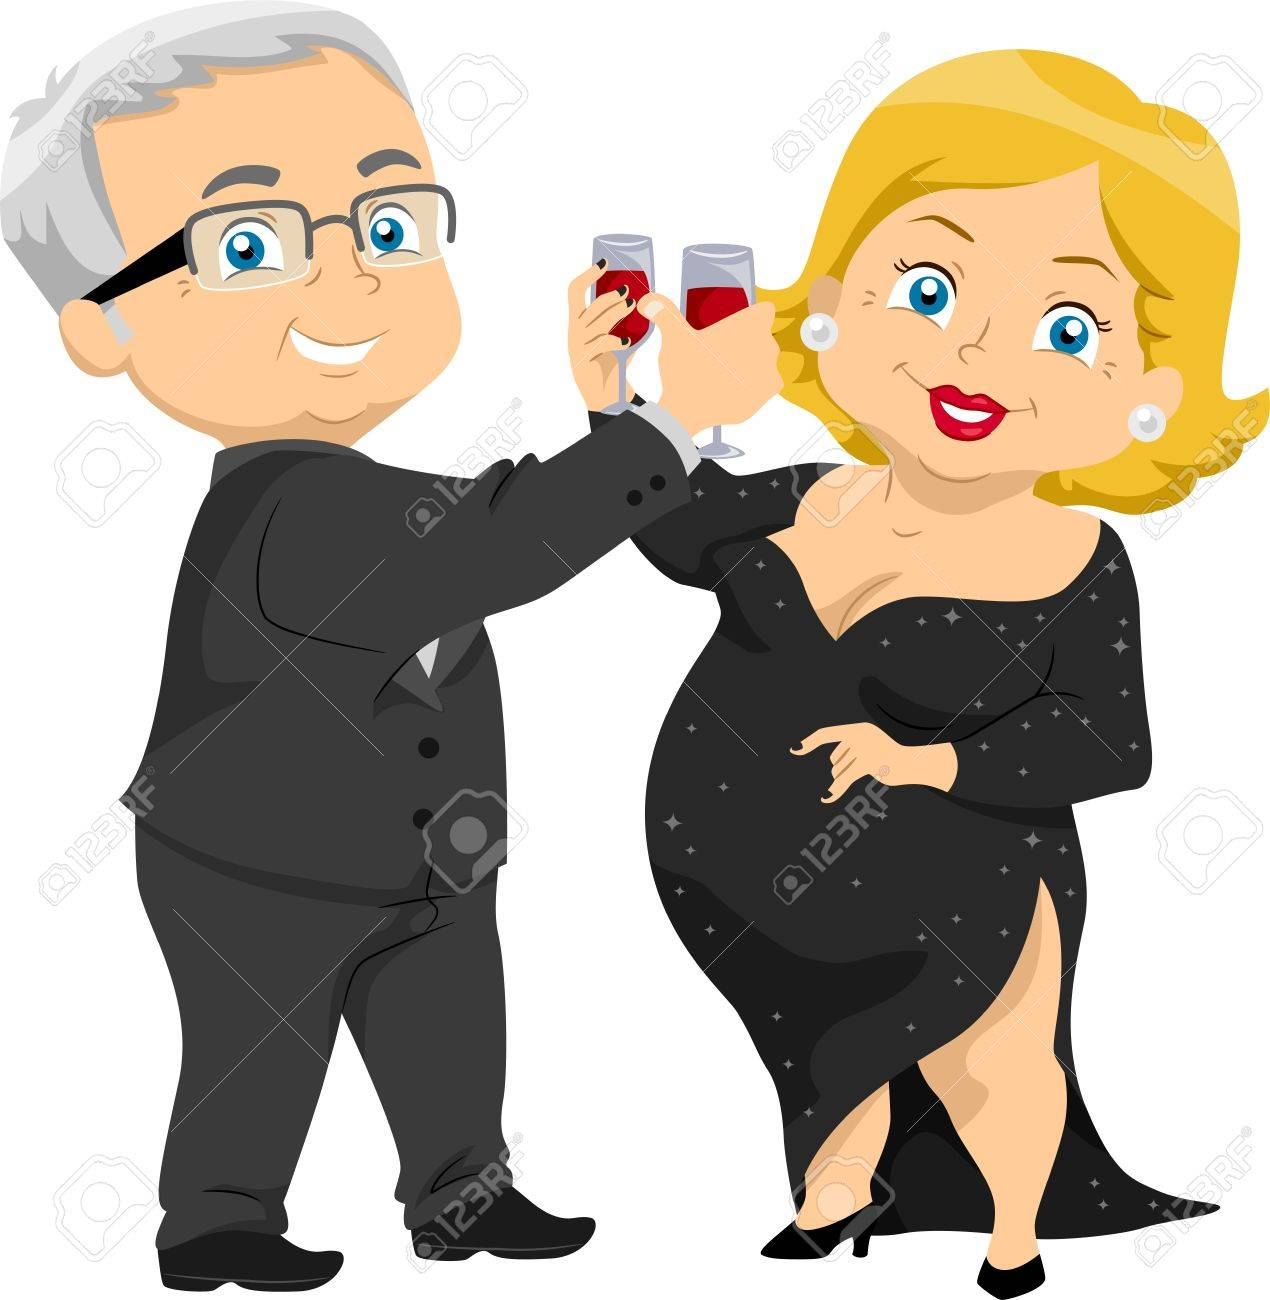 Illustration of Senior Couple Having a Toast at a Party Stock Illustration - 17871746